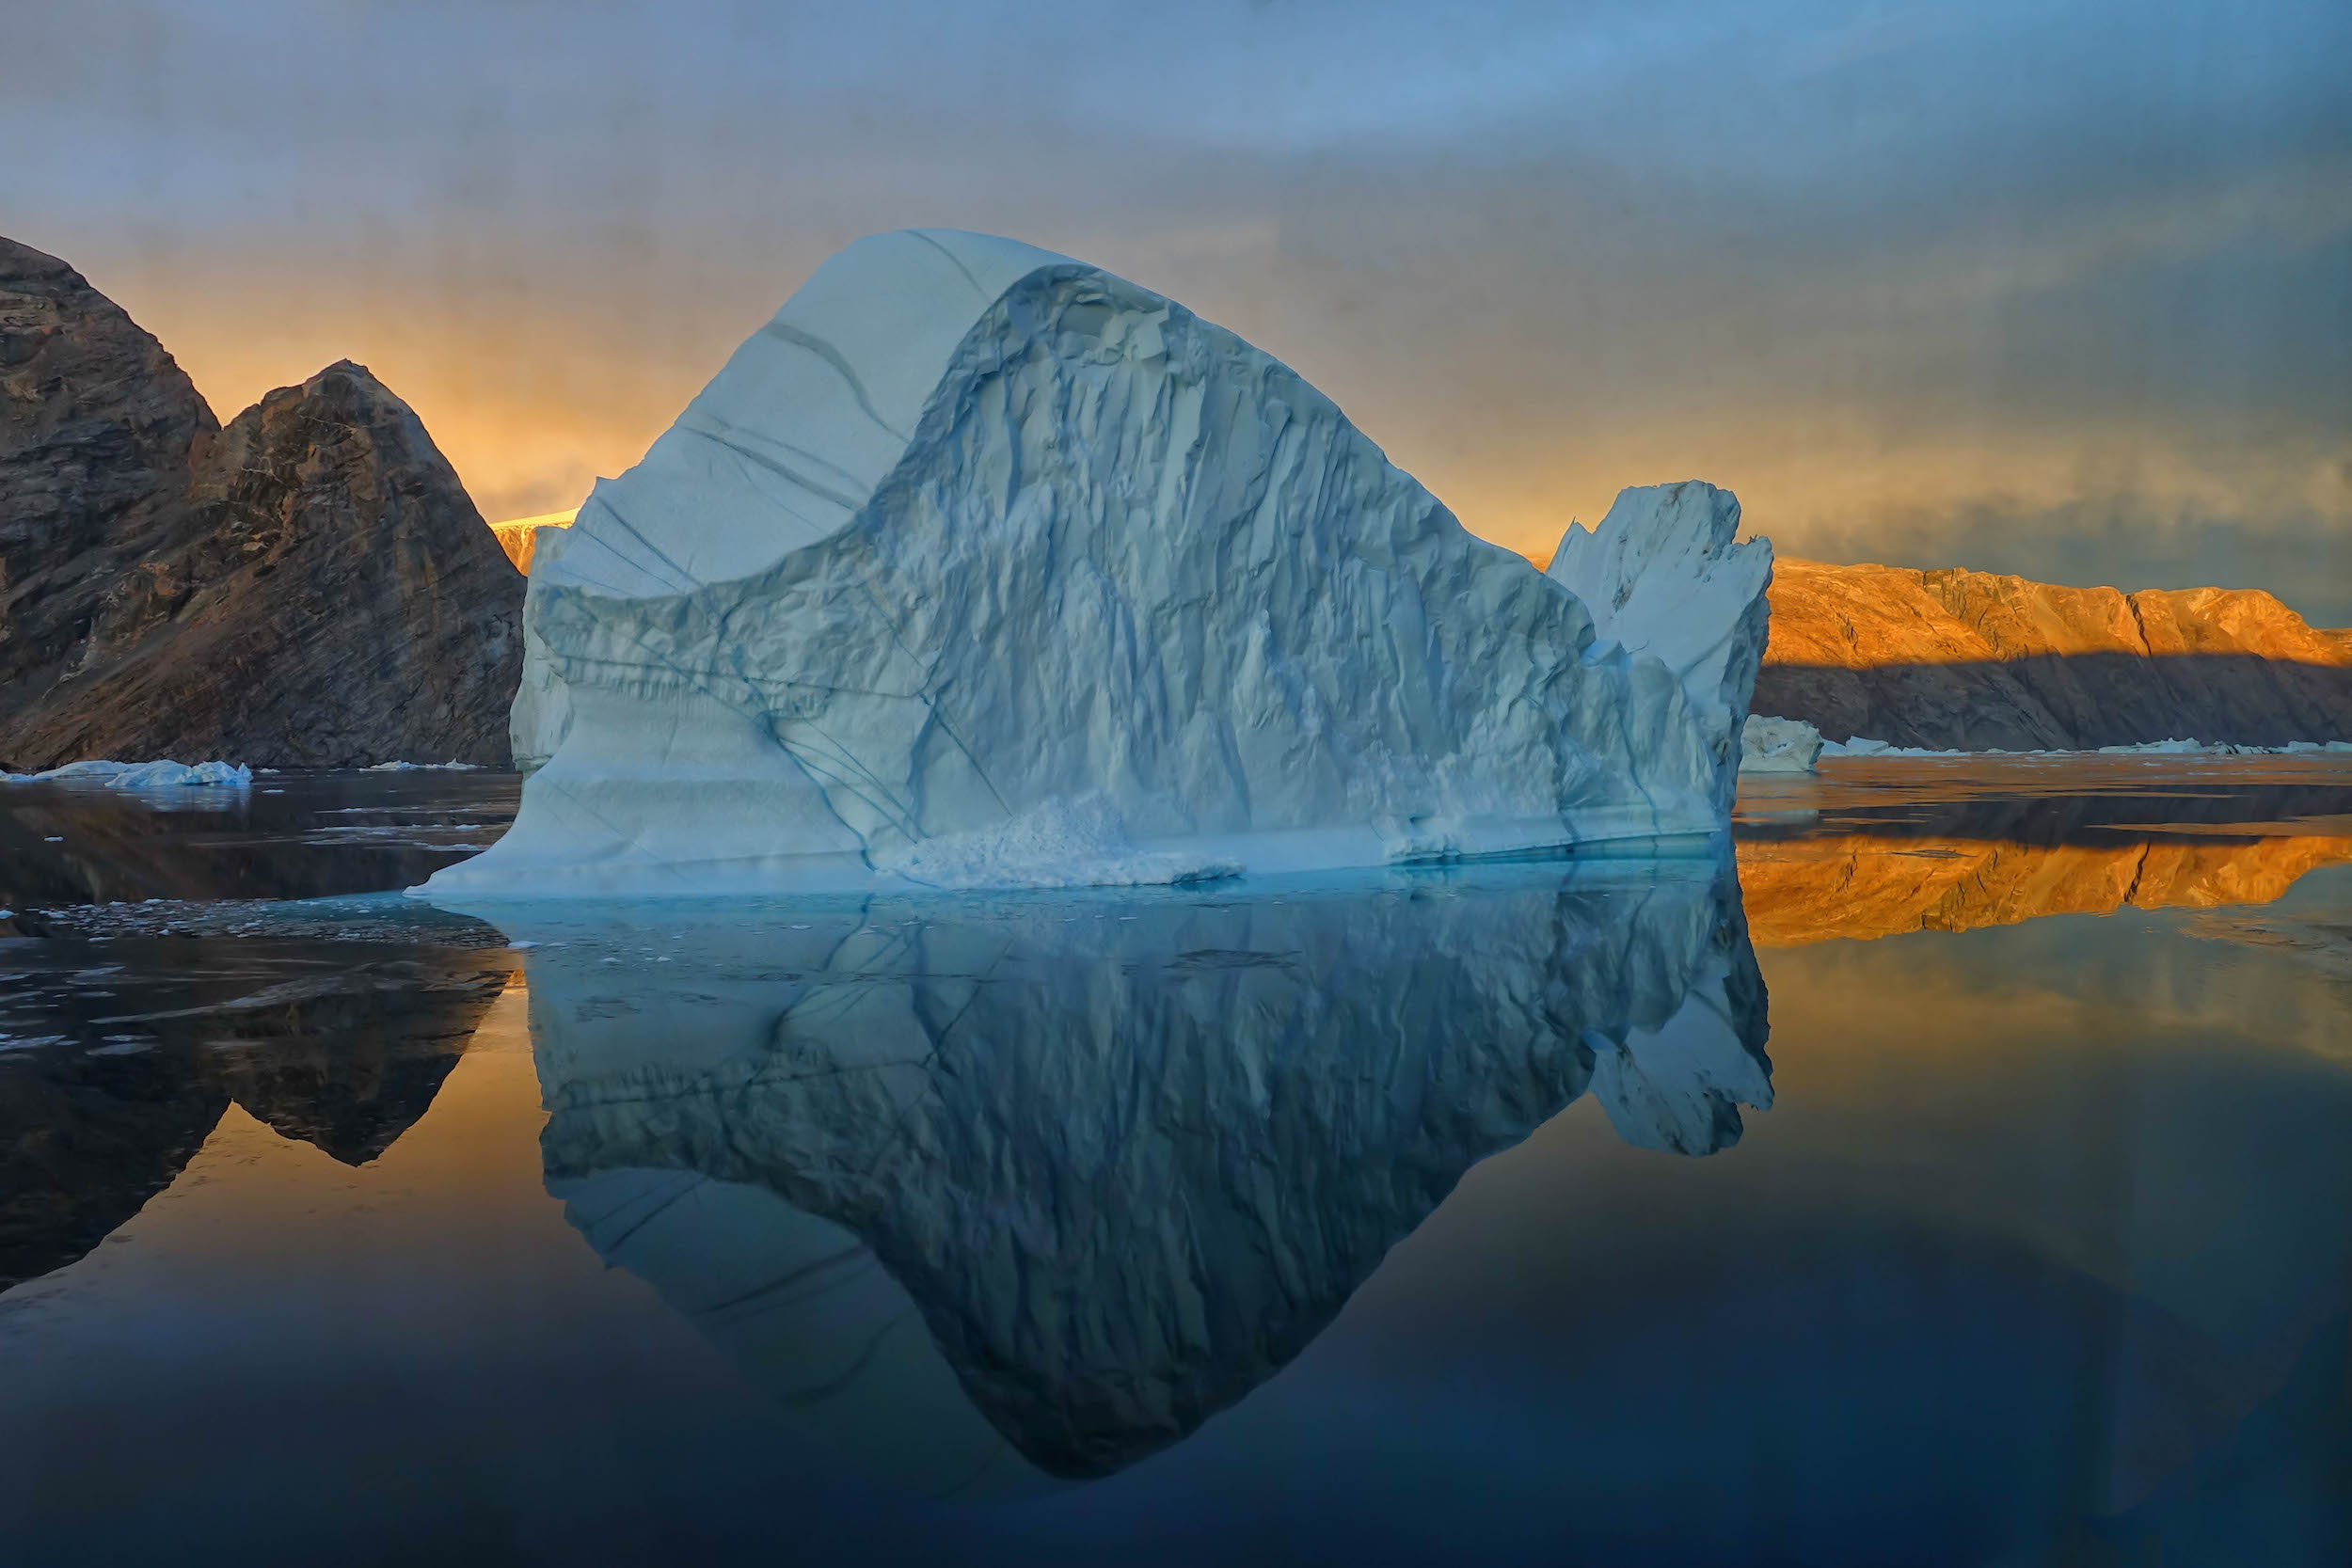 Blue iceberg in front of a setting sun, on a fjord